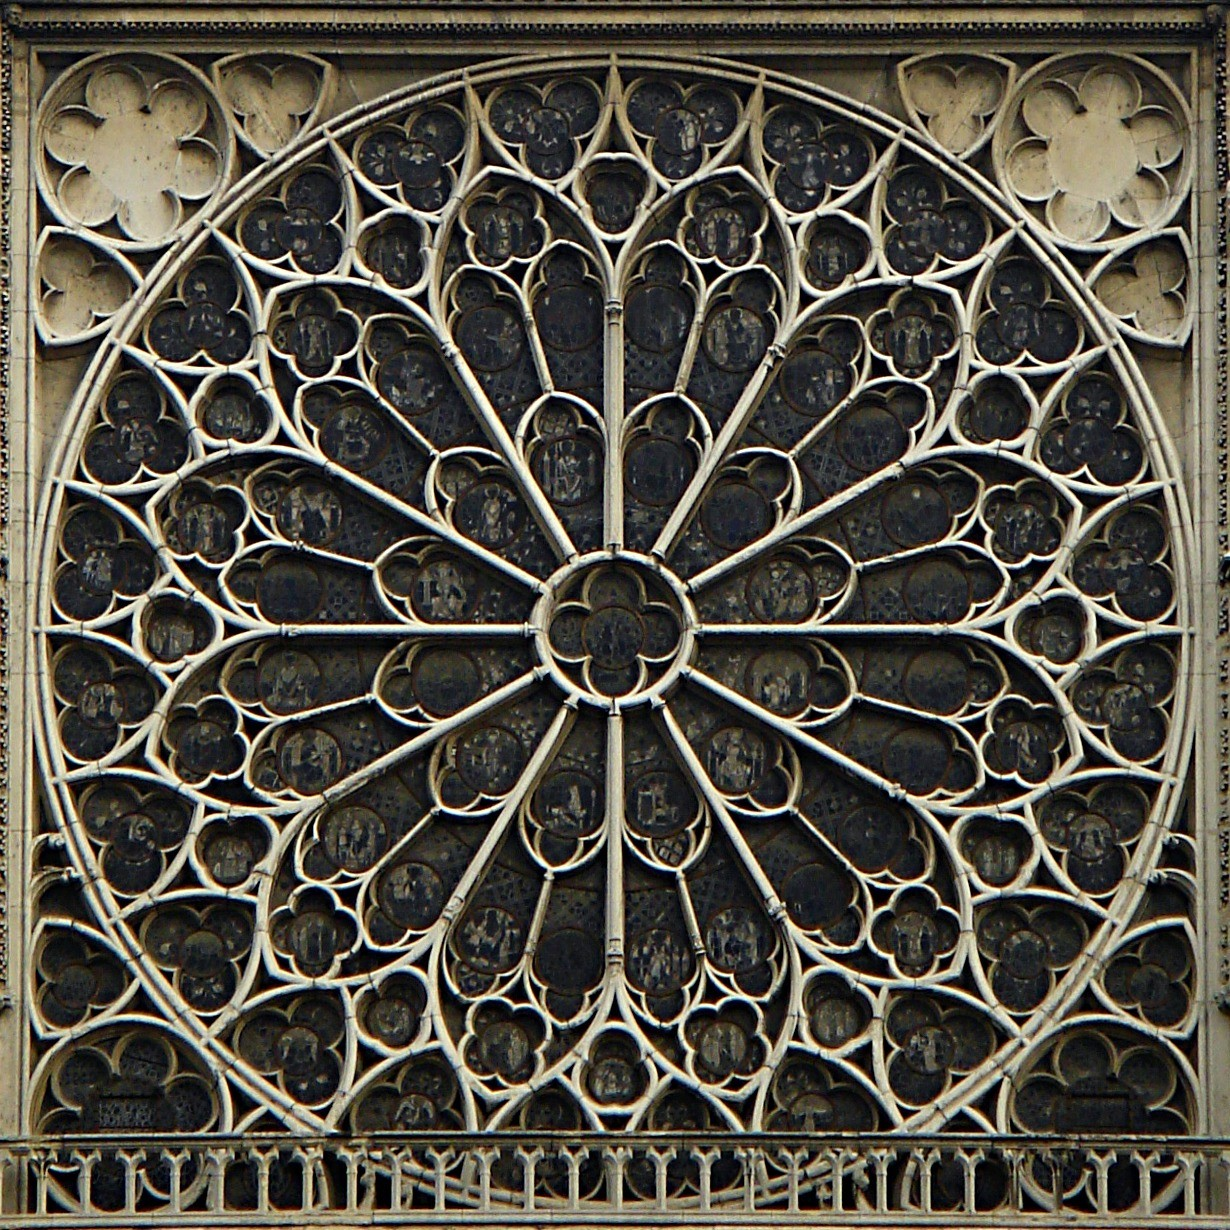 Unified Architectural Theory, Chapter 14, The rose window at Notre Dame de Paris. Image © Flickr CC user Alexandre Duret-Lutz